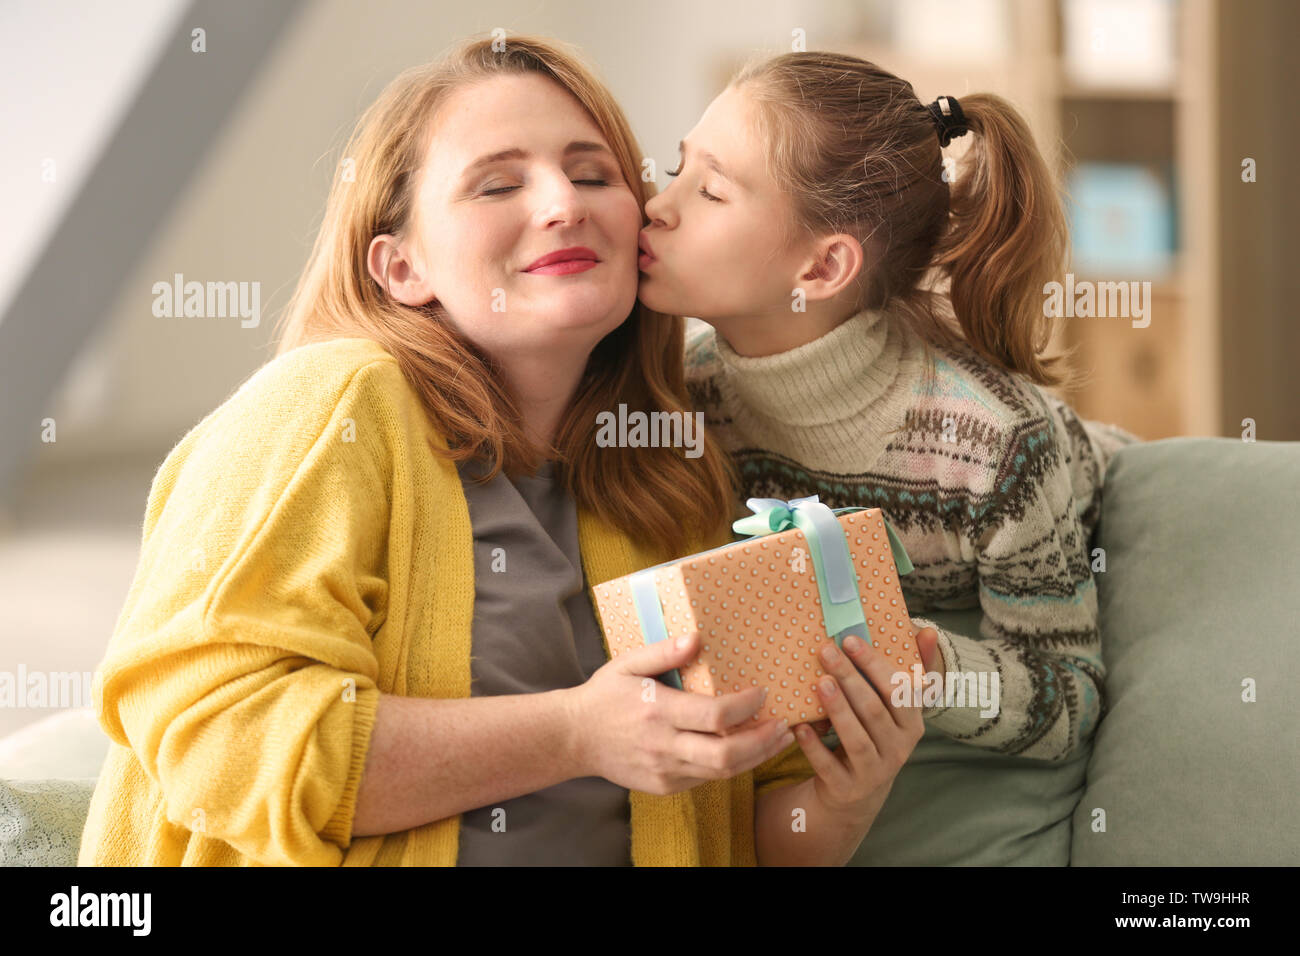 Cute little girl giving her mother a present at home - Stock Image